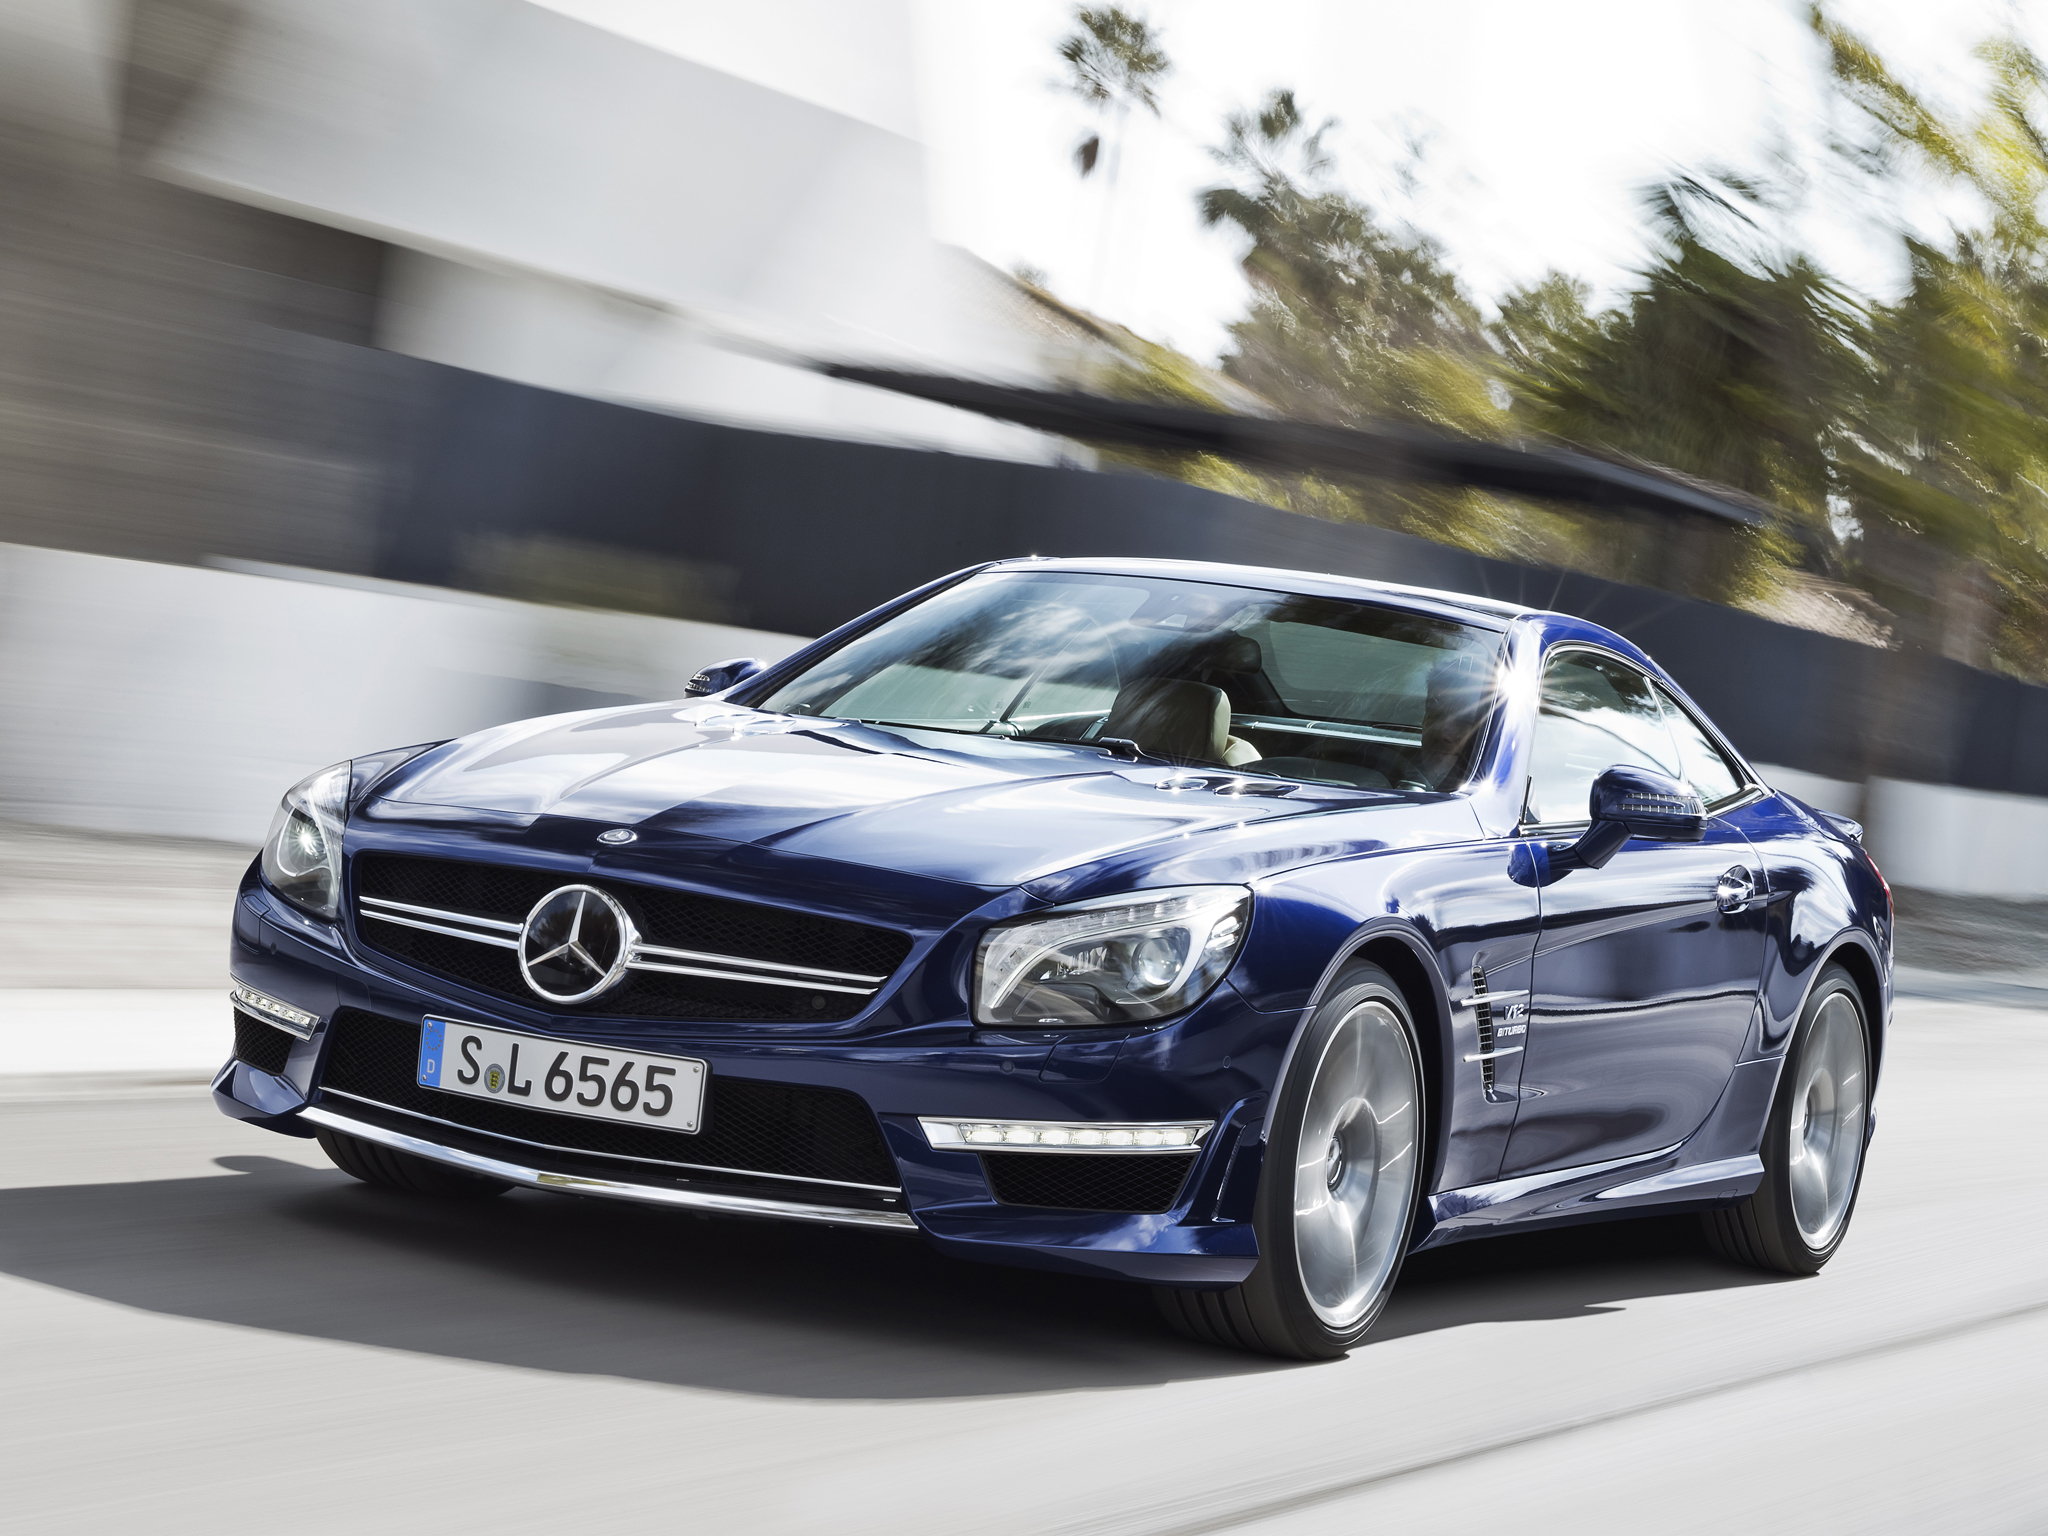 Mercedes-Benz SL65 AMG photo #90116